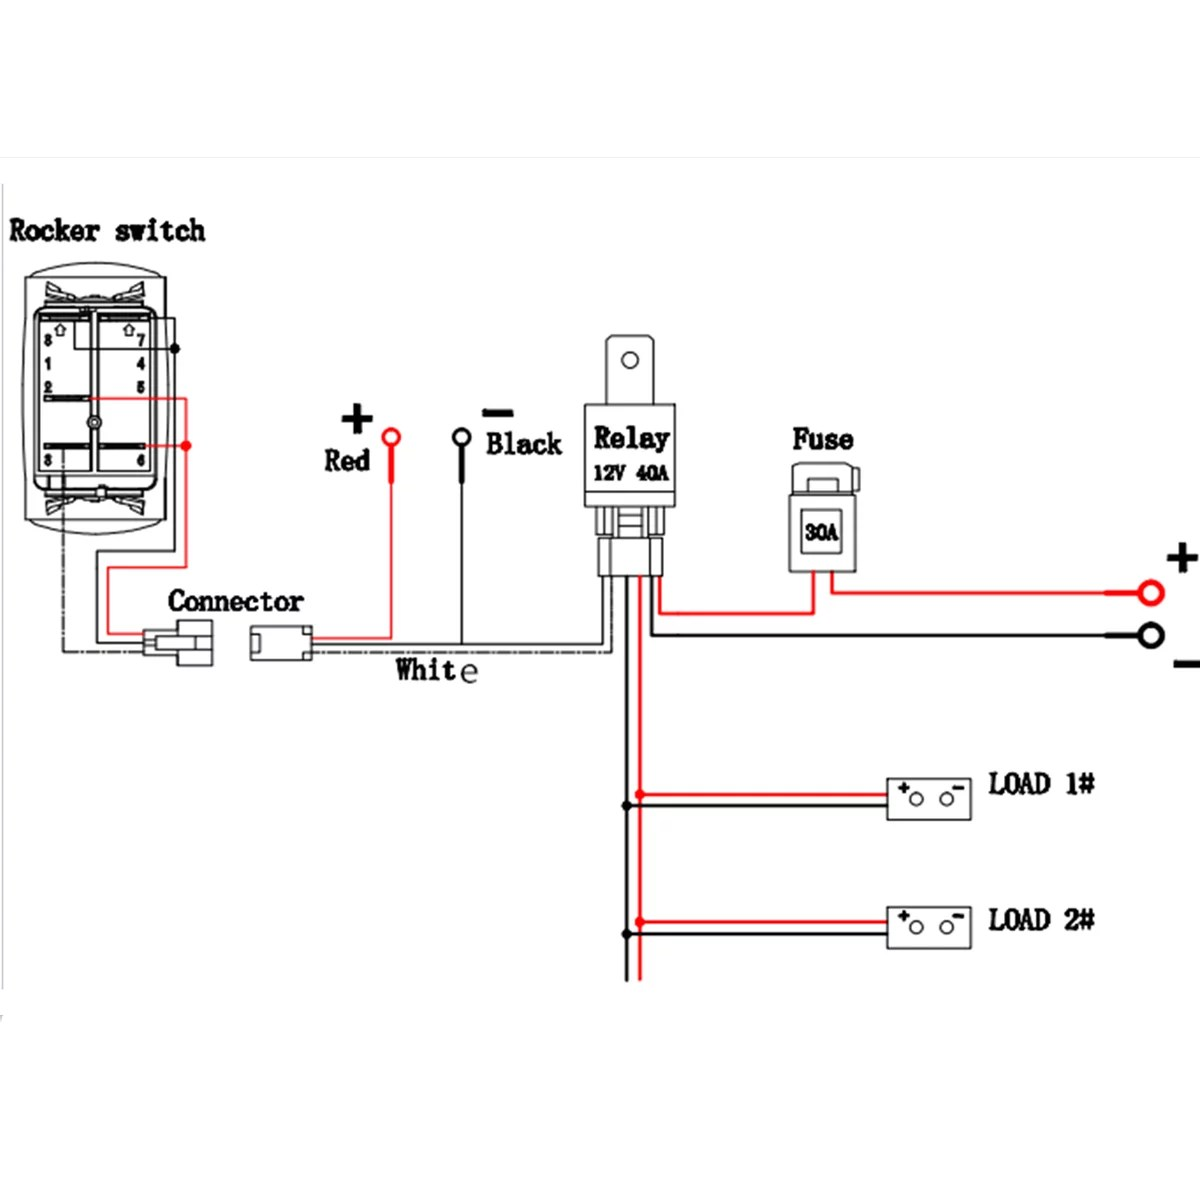 hight resolution of 12 volt light fog lamp wiring diagram wiring schematic data 2 prong toggle switch wiring 12 volt dimmer switch wiring diagram